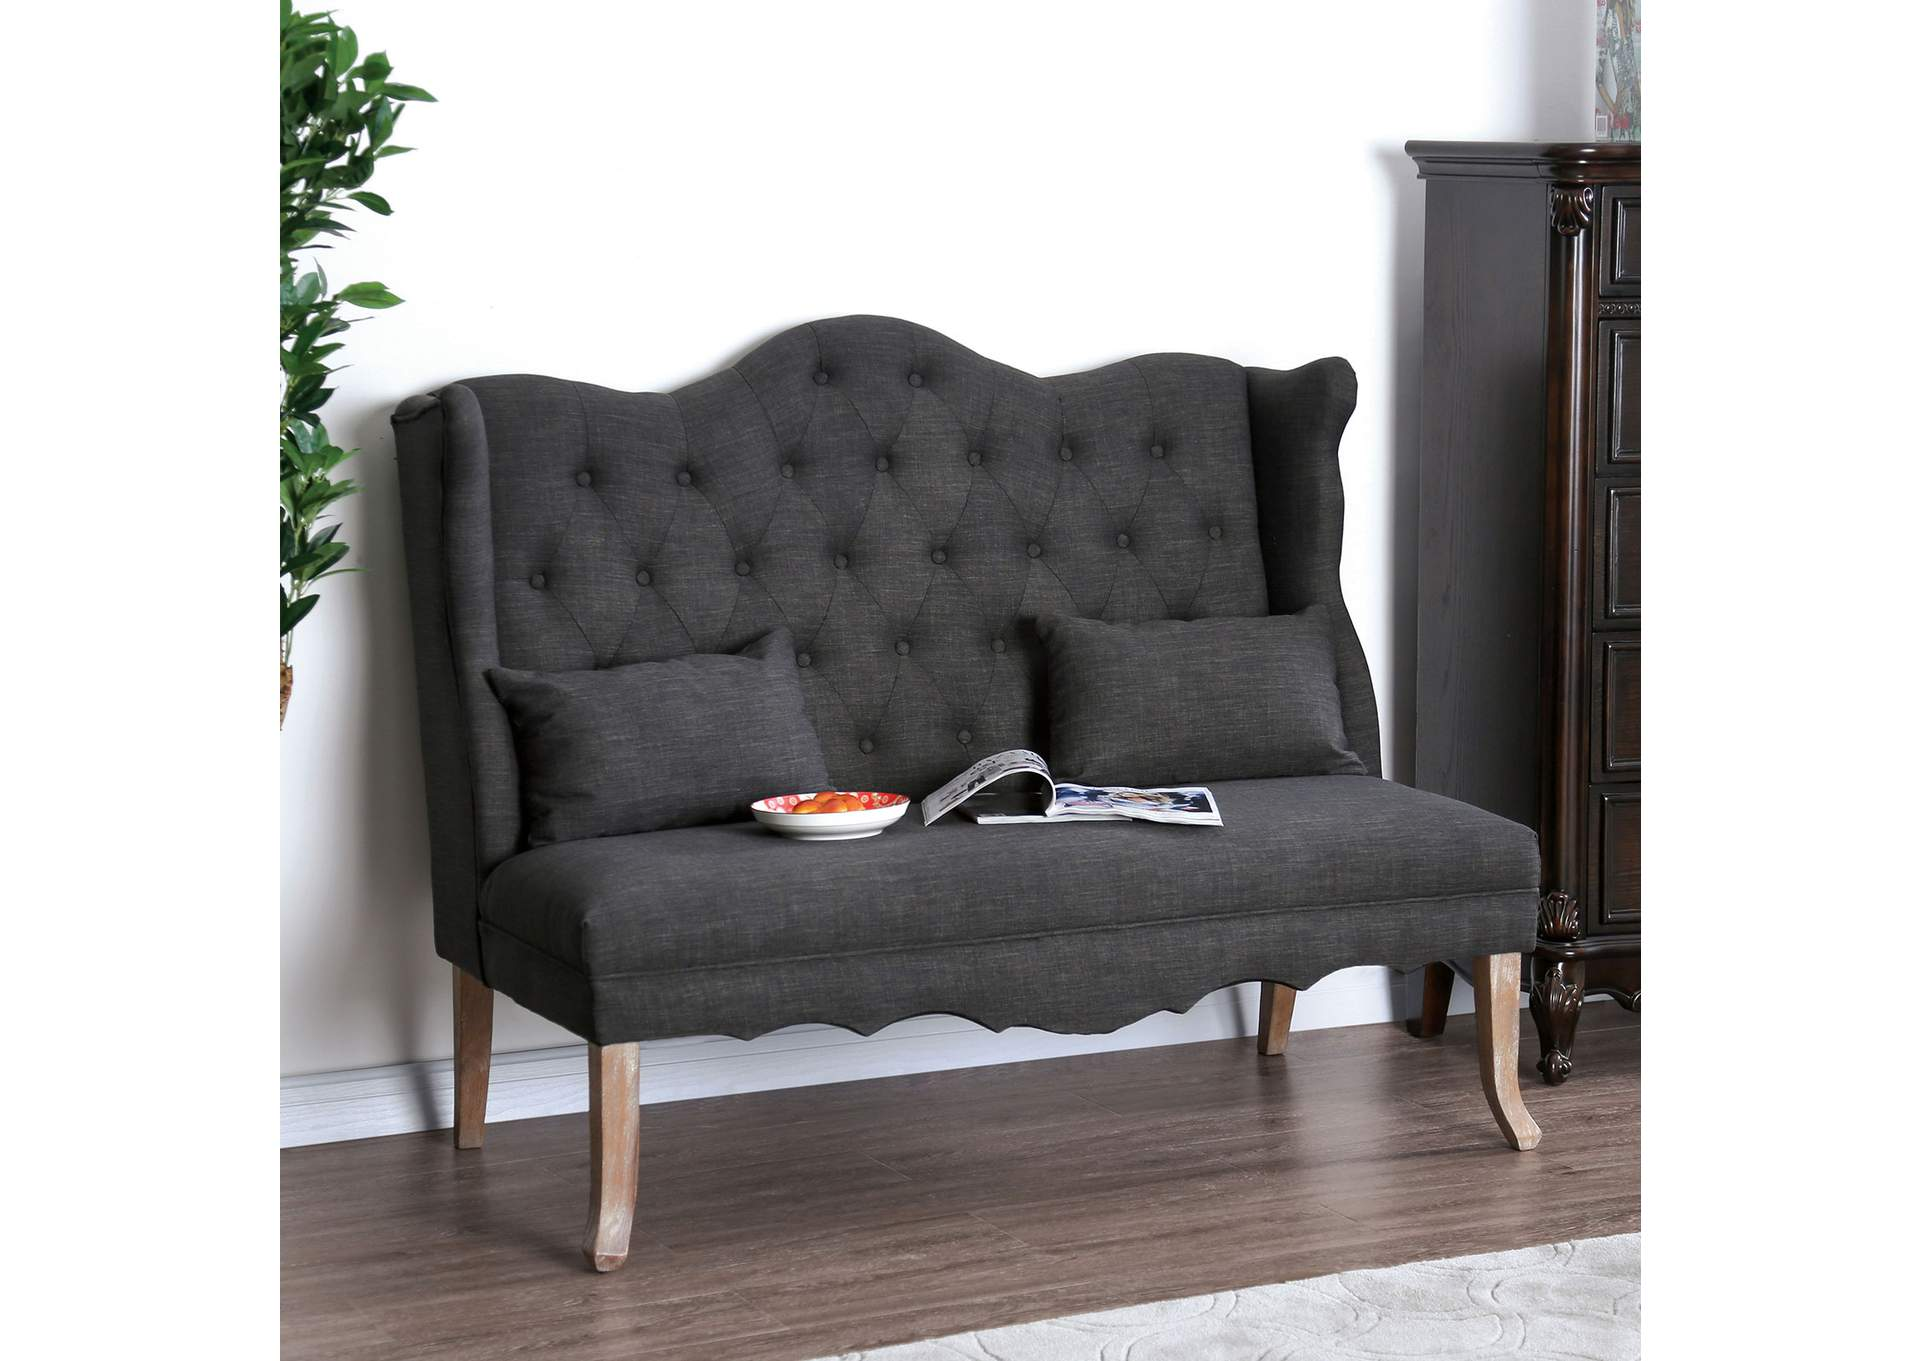 Donnelly Gray Linen Loveseat w/Pillows,Furniture of America